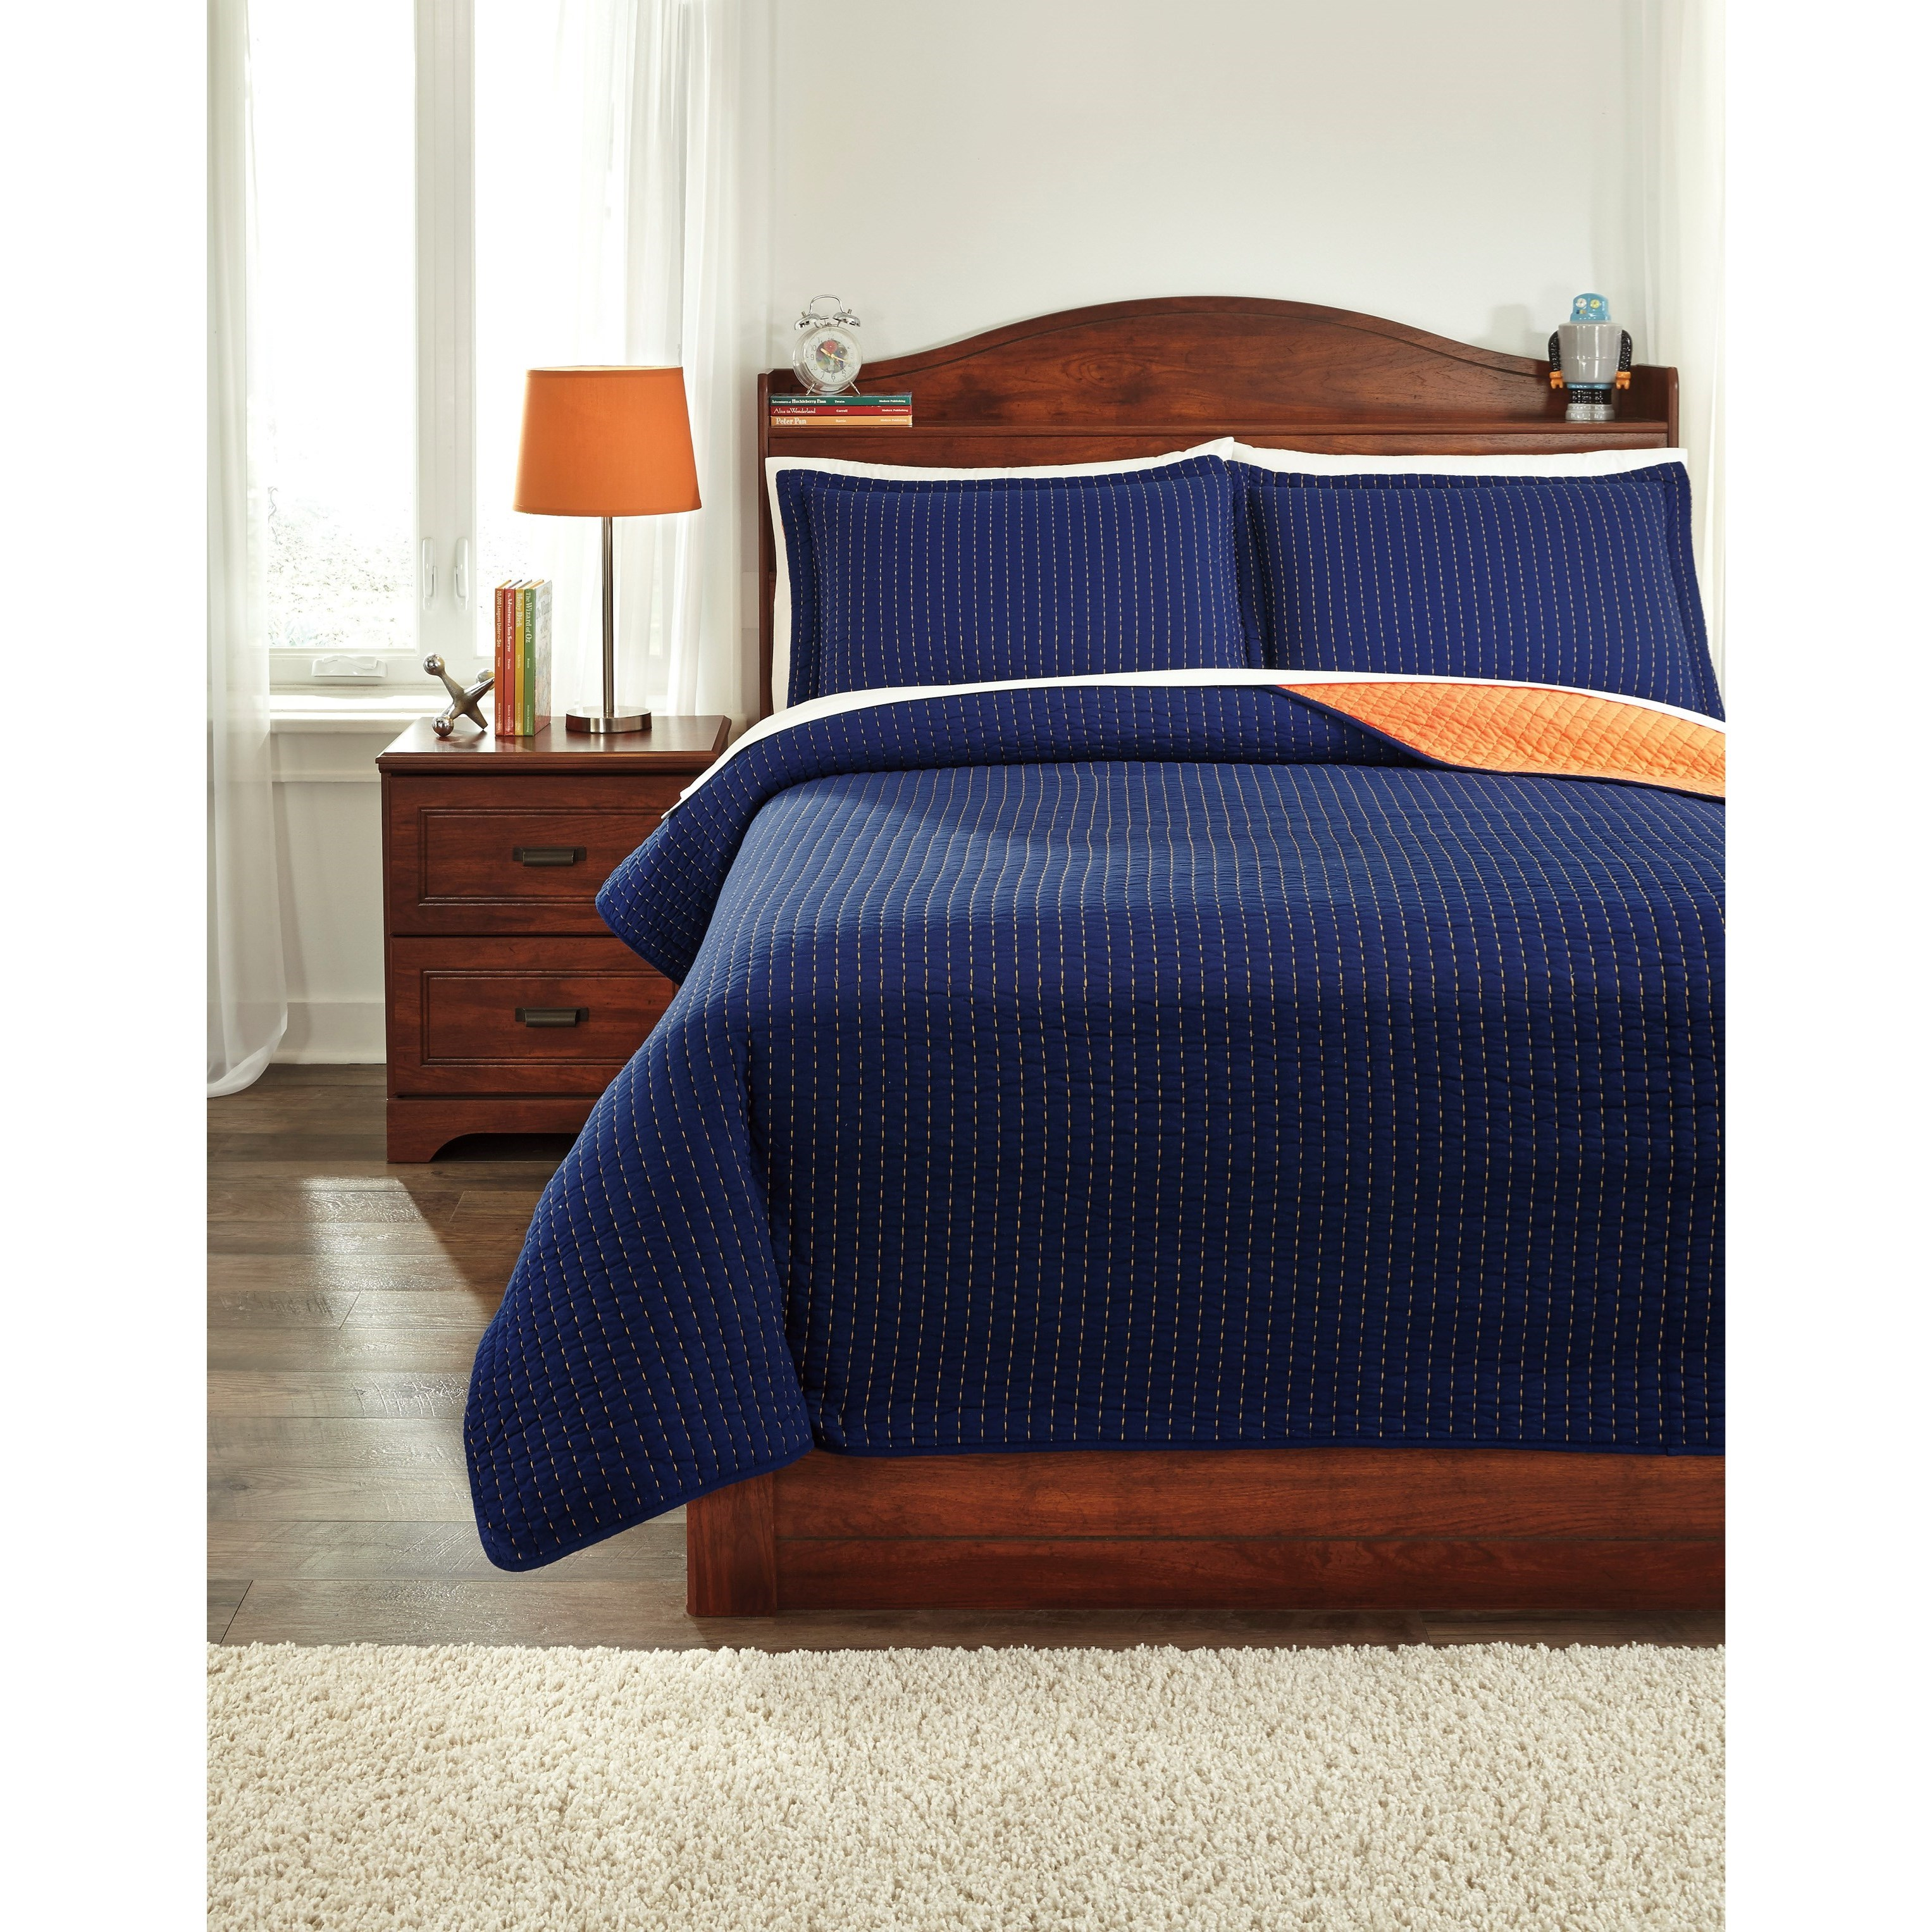 Bedding Sets Full Dansby Coverlet Set by Signature Design at Fisher Home Furnishings